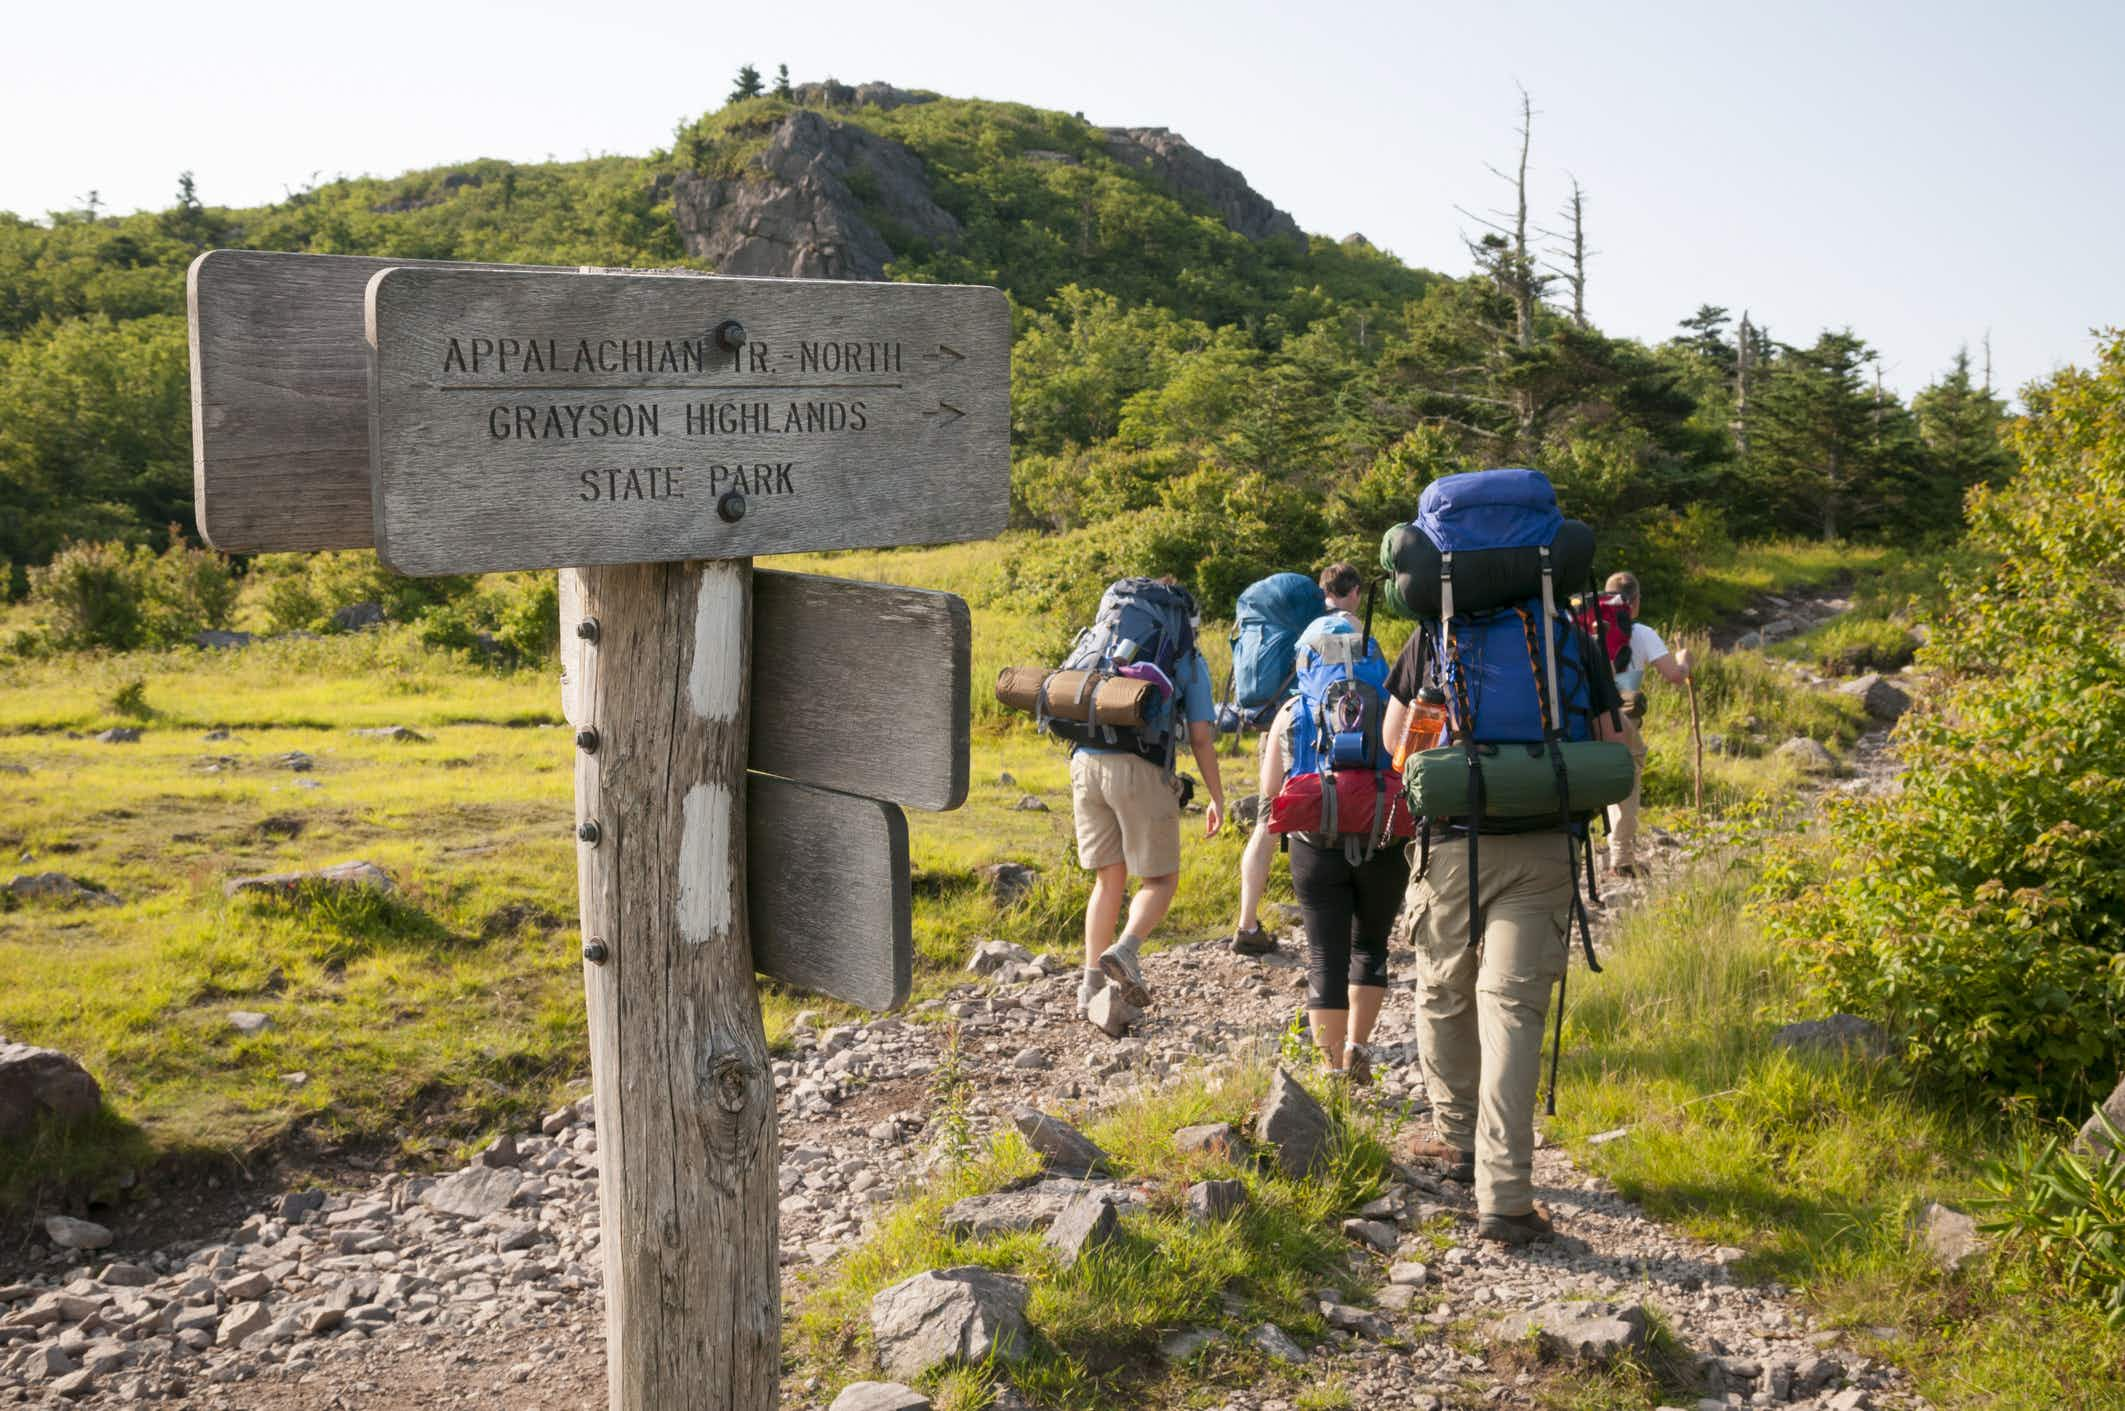 The US National Trails System is celebrating 50 years of the great outdoors in 2018